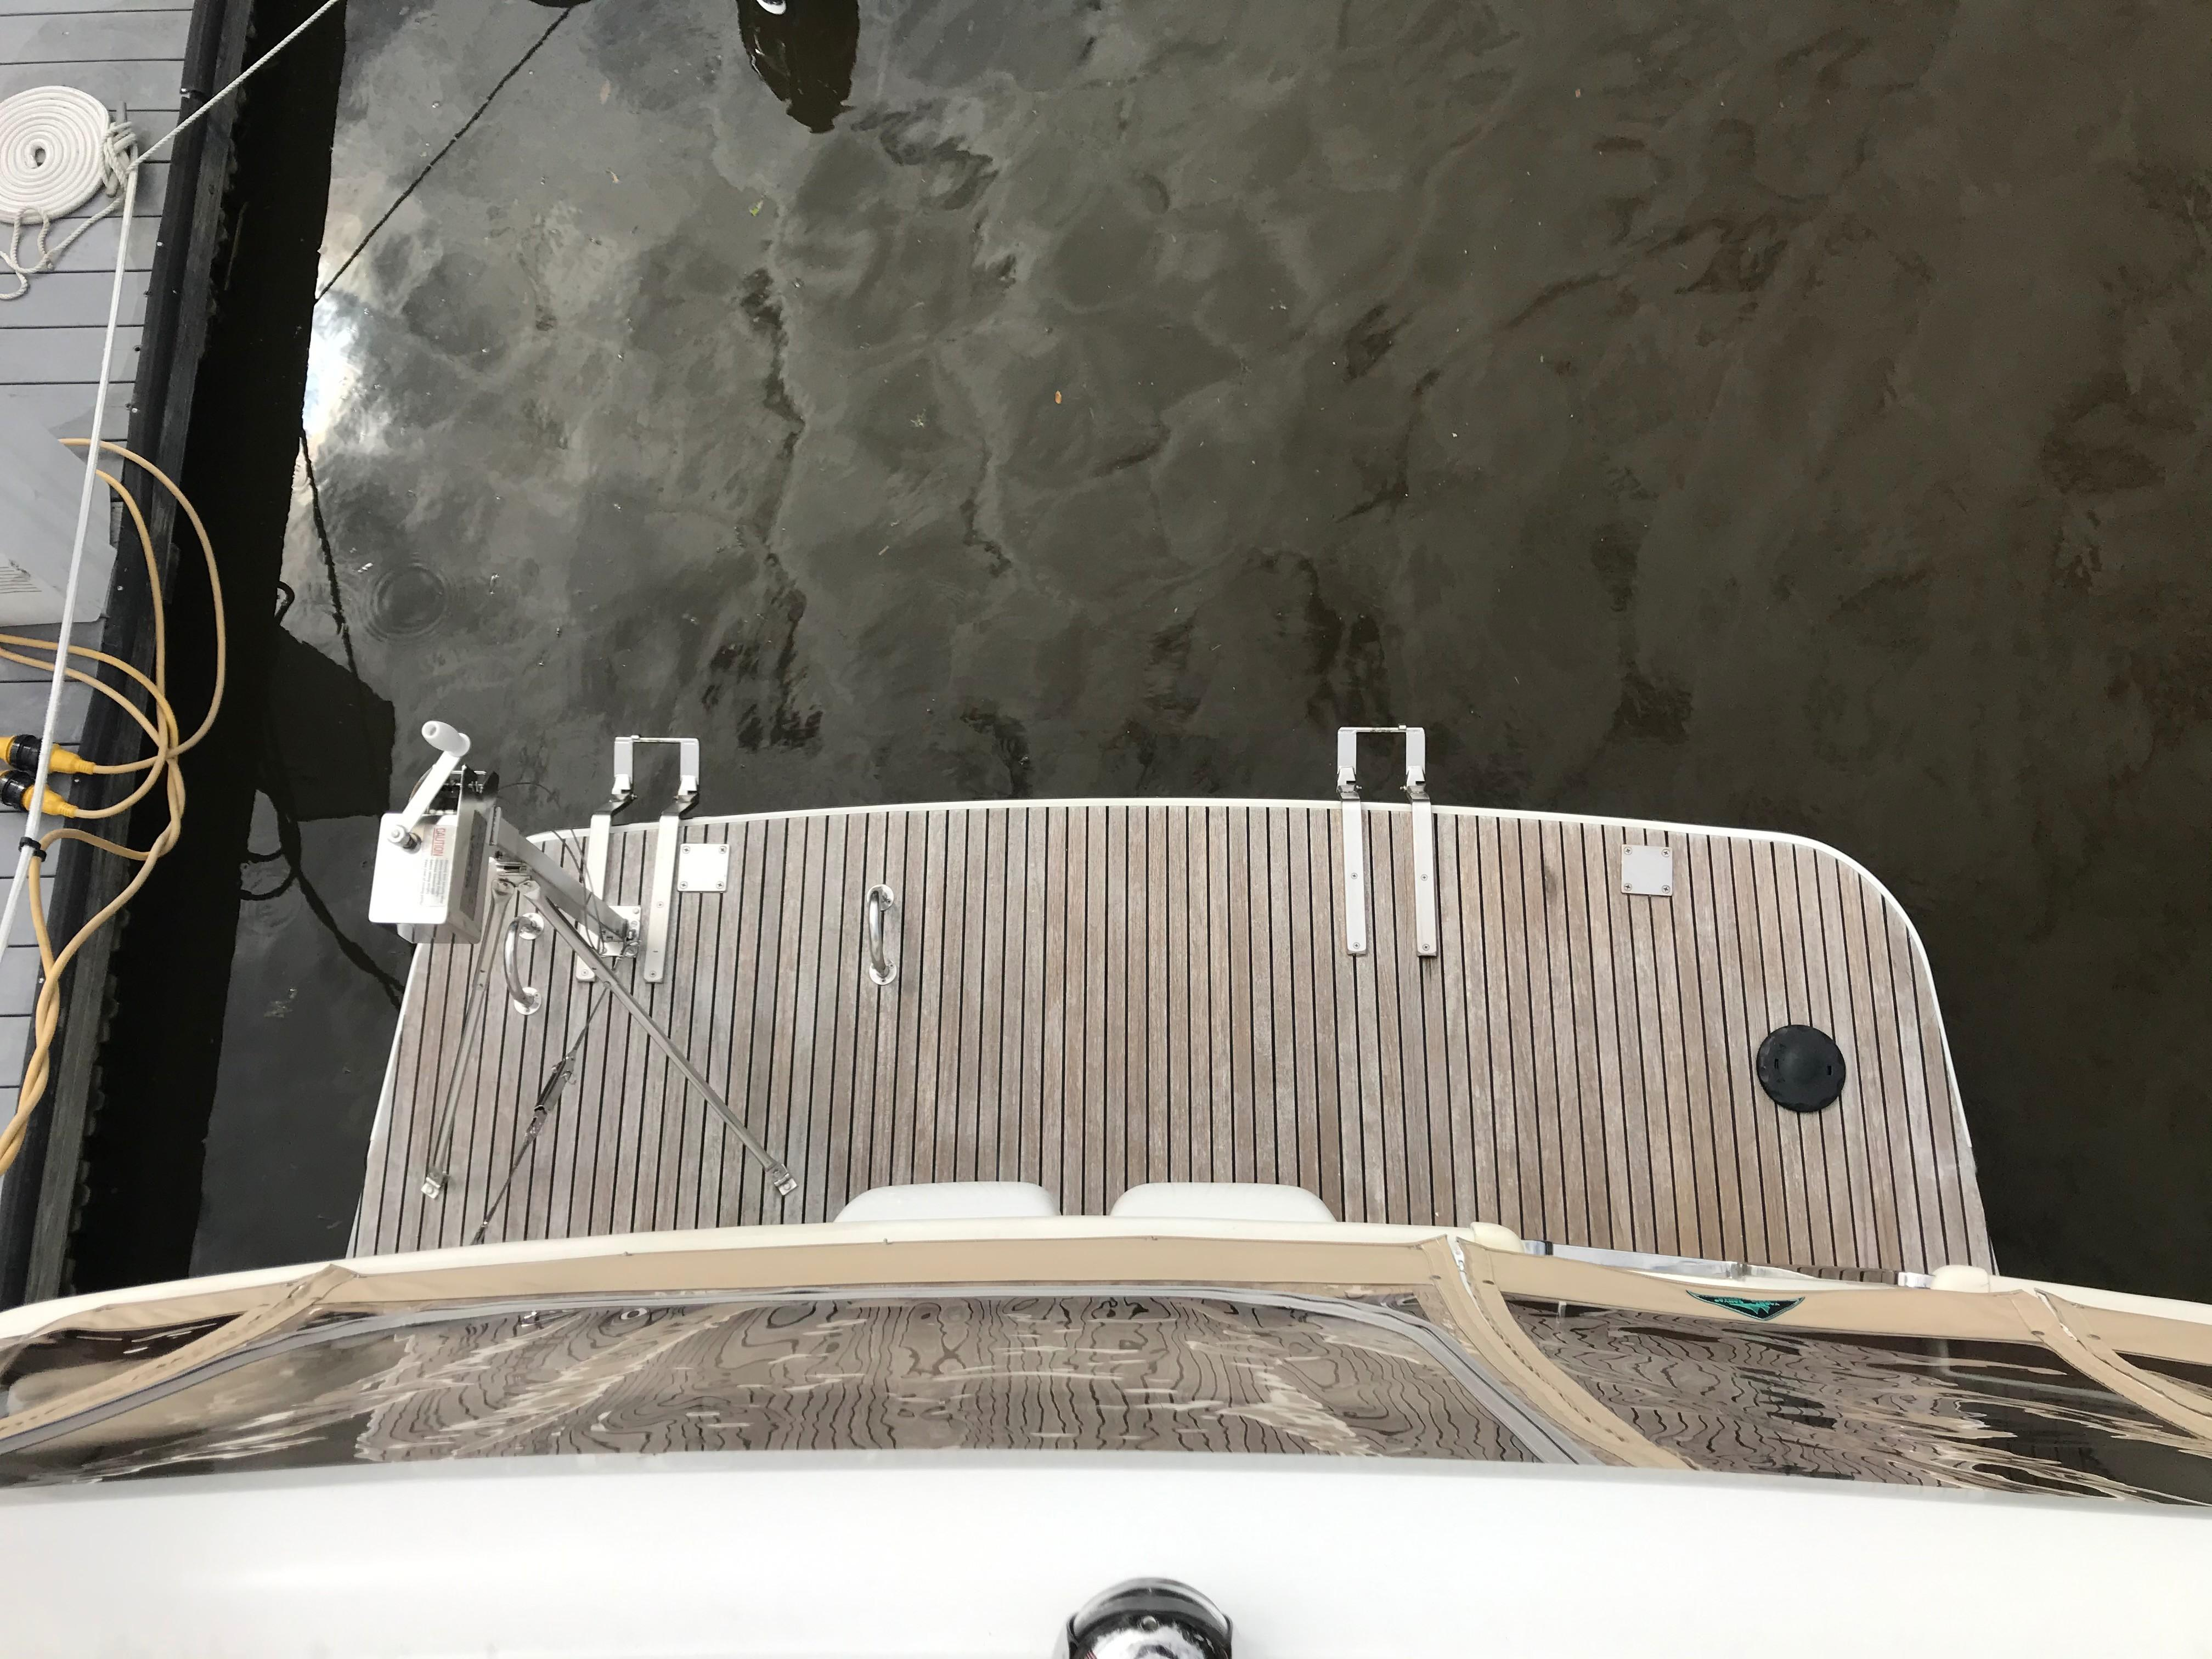 Beneteau 34 Swift Trawler - View of Swim platform from above